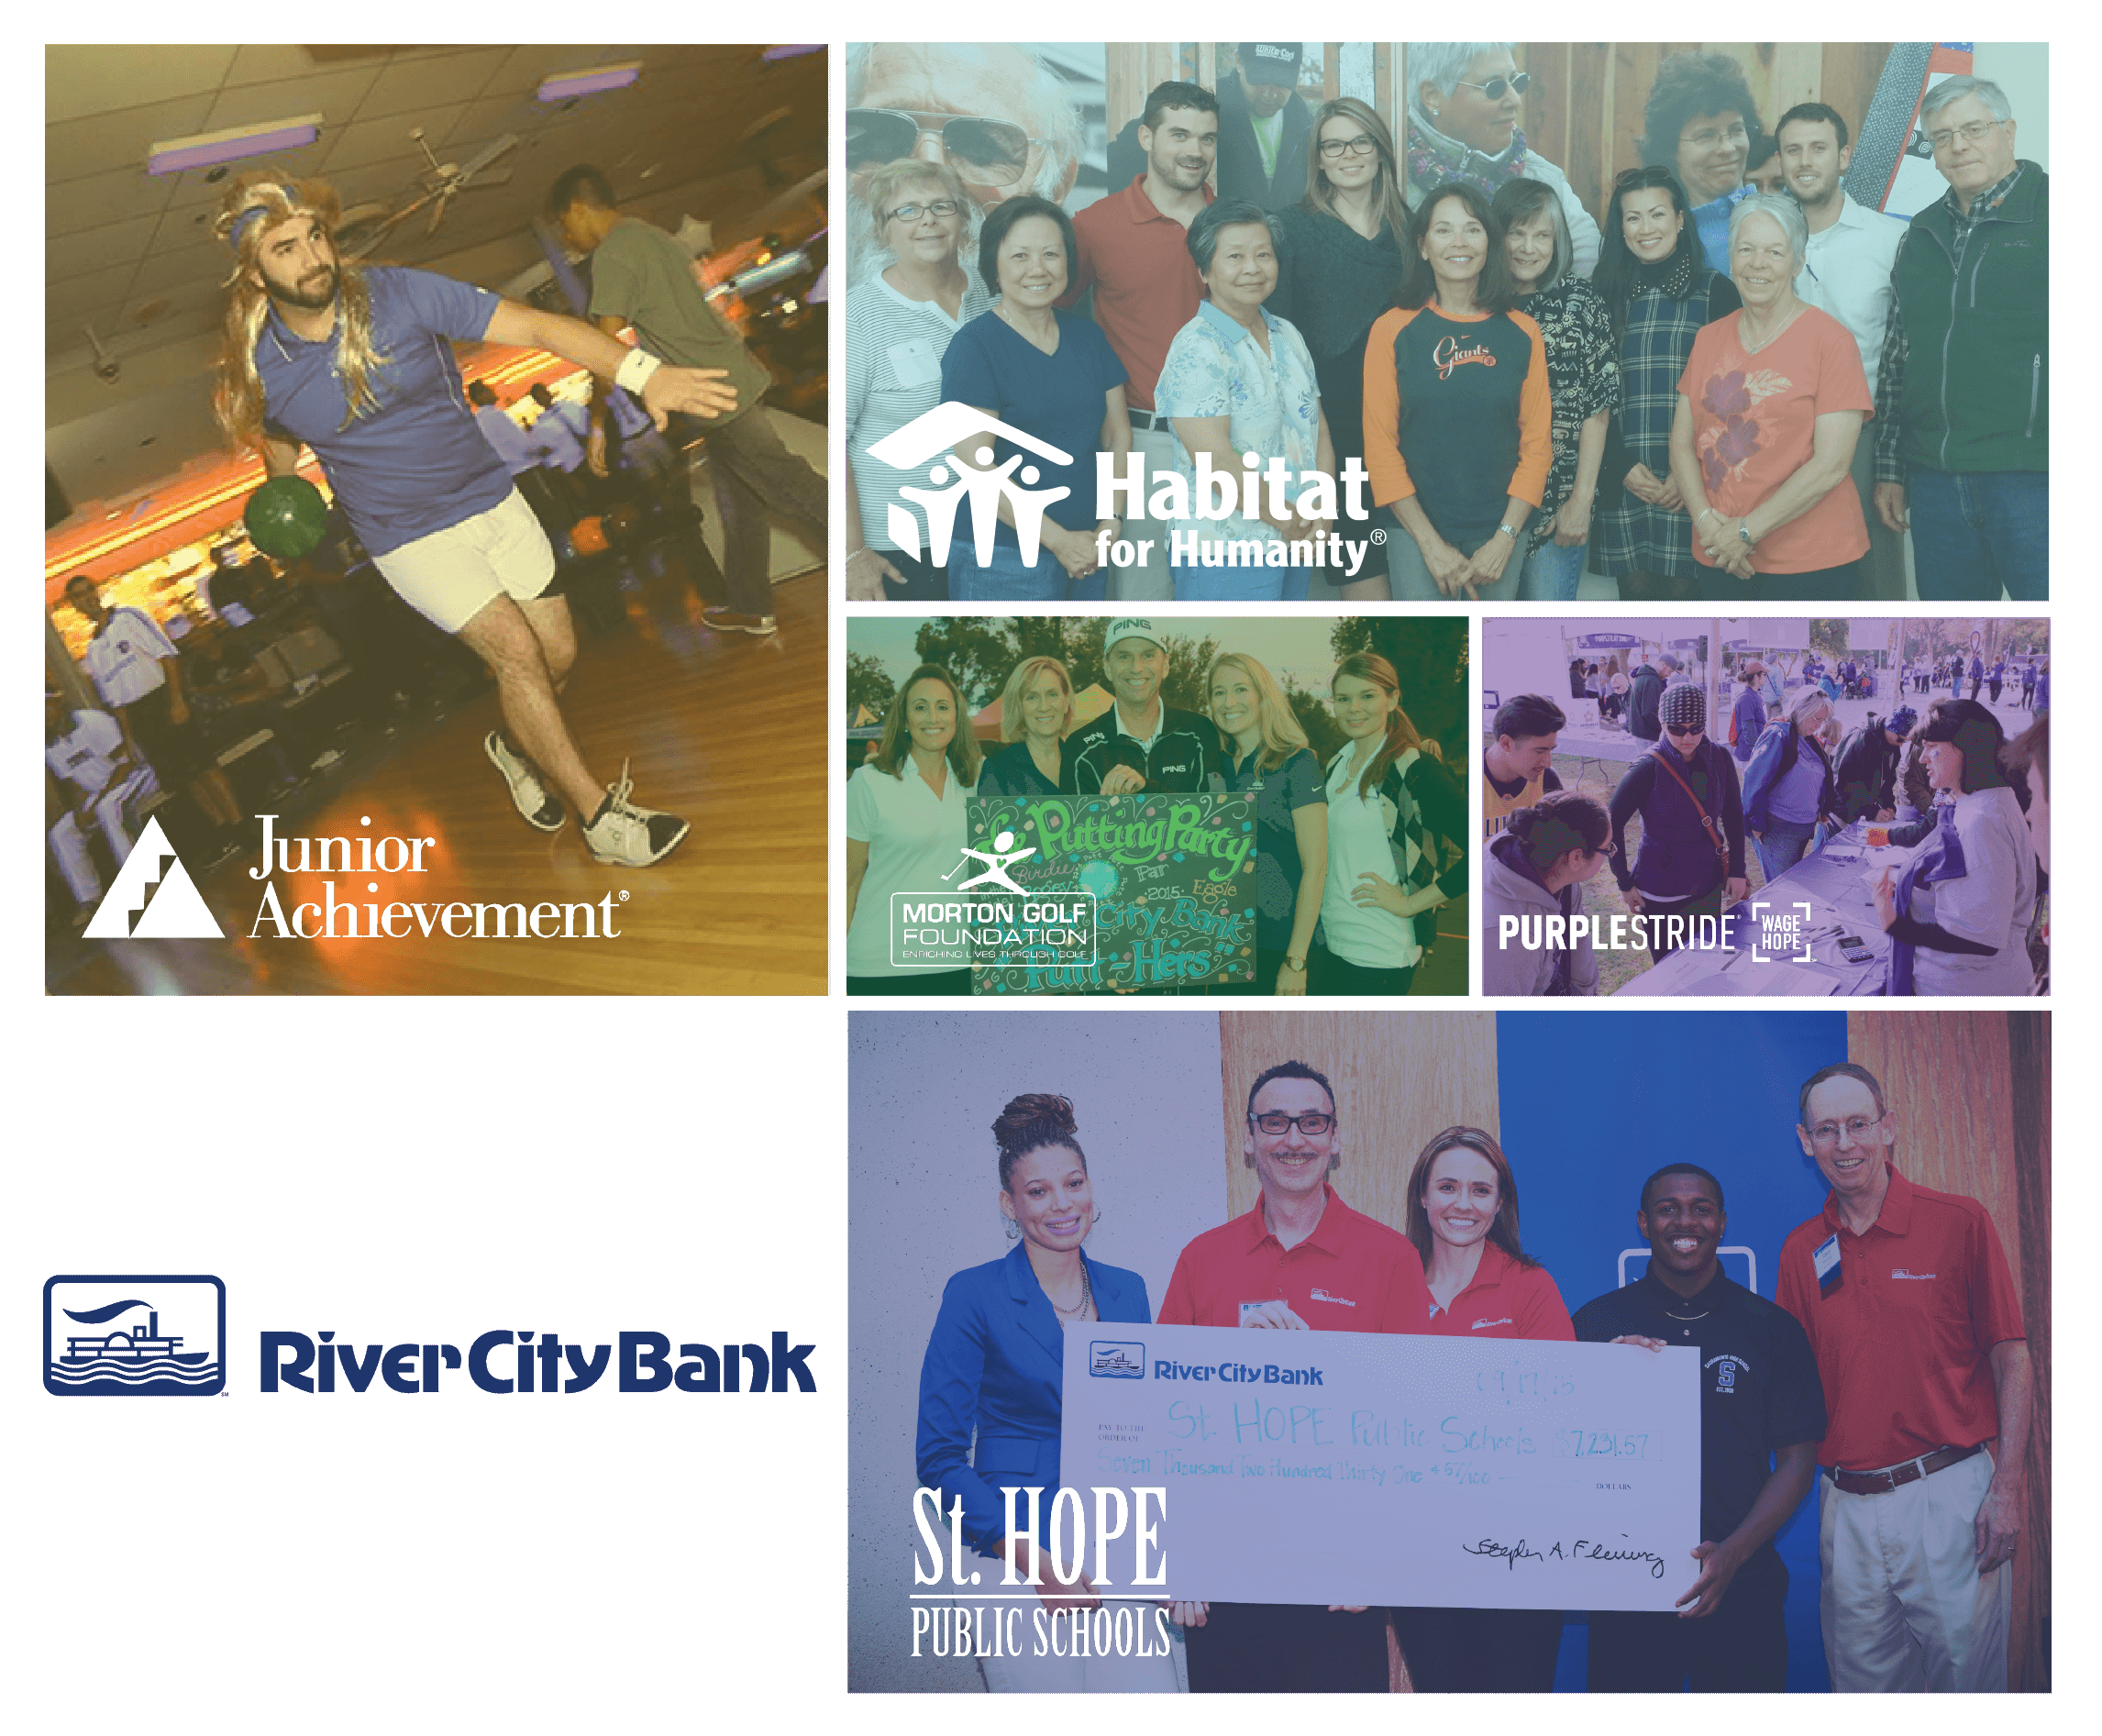 Photos of River City Bank in the community.